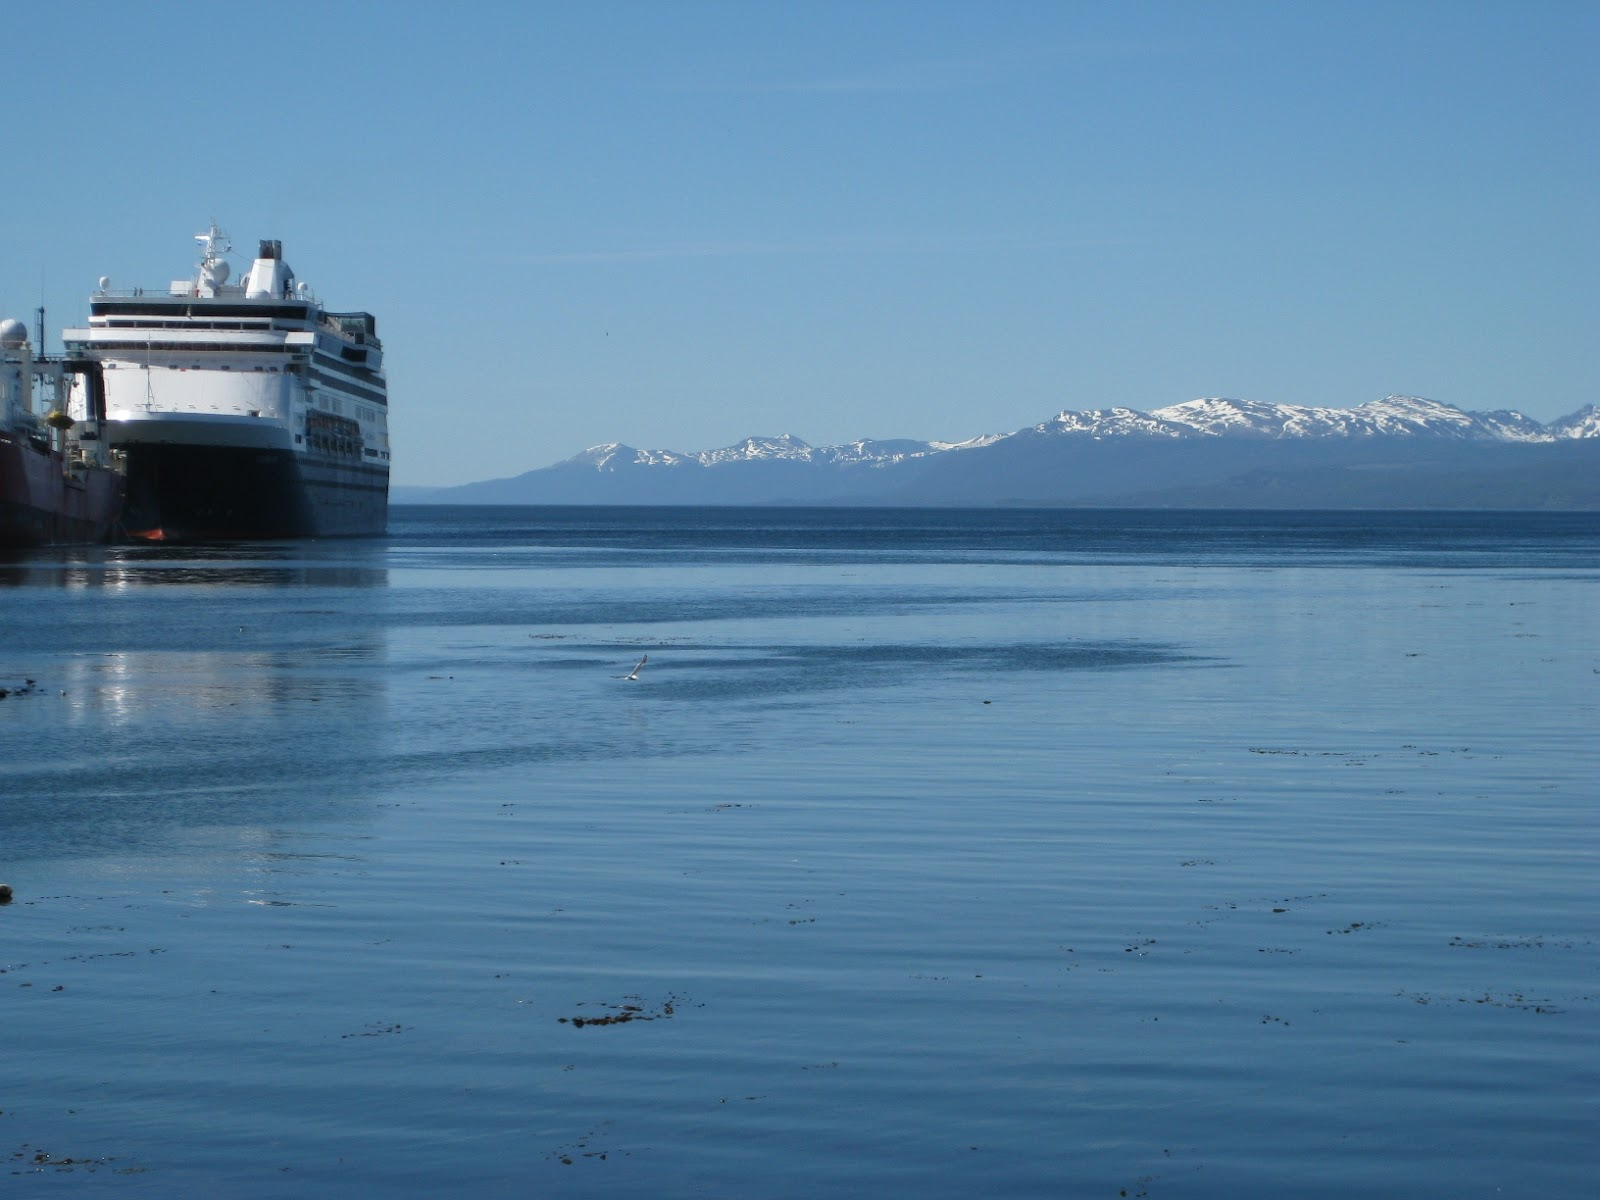 Beagle Channel, looking across to Chile